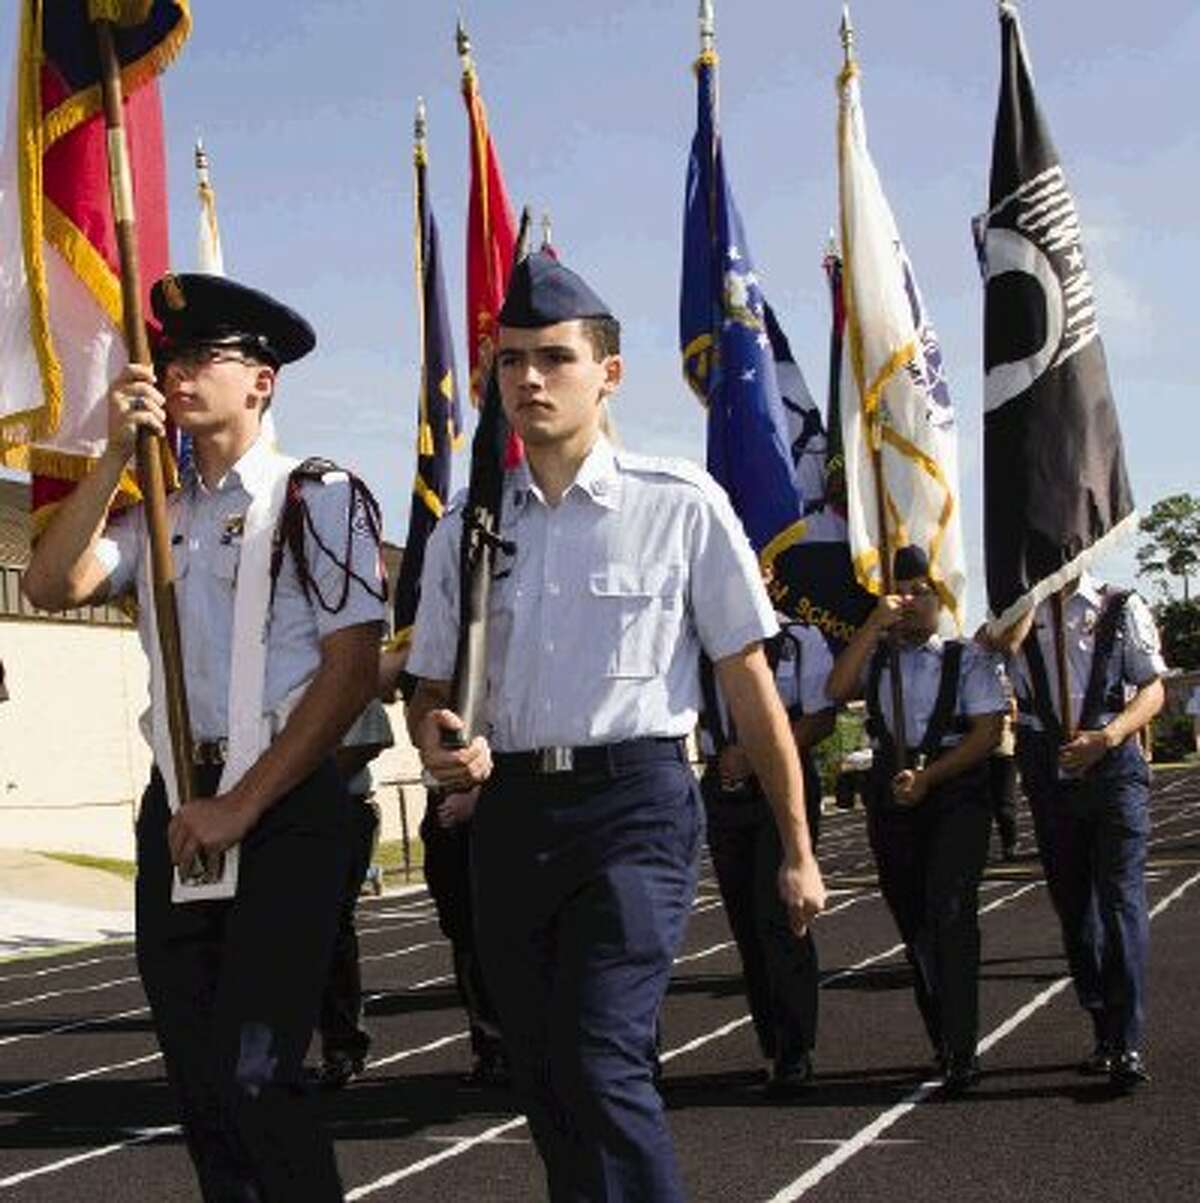 A ROTC group marches during Salute to Our Veterans at Moorhead Stadium. The event was for families, friends, veterans and students to celebrate Veterans Day on Monday in Conroe. Go to HCNPics.com to view and purchase this photo, and others like it.